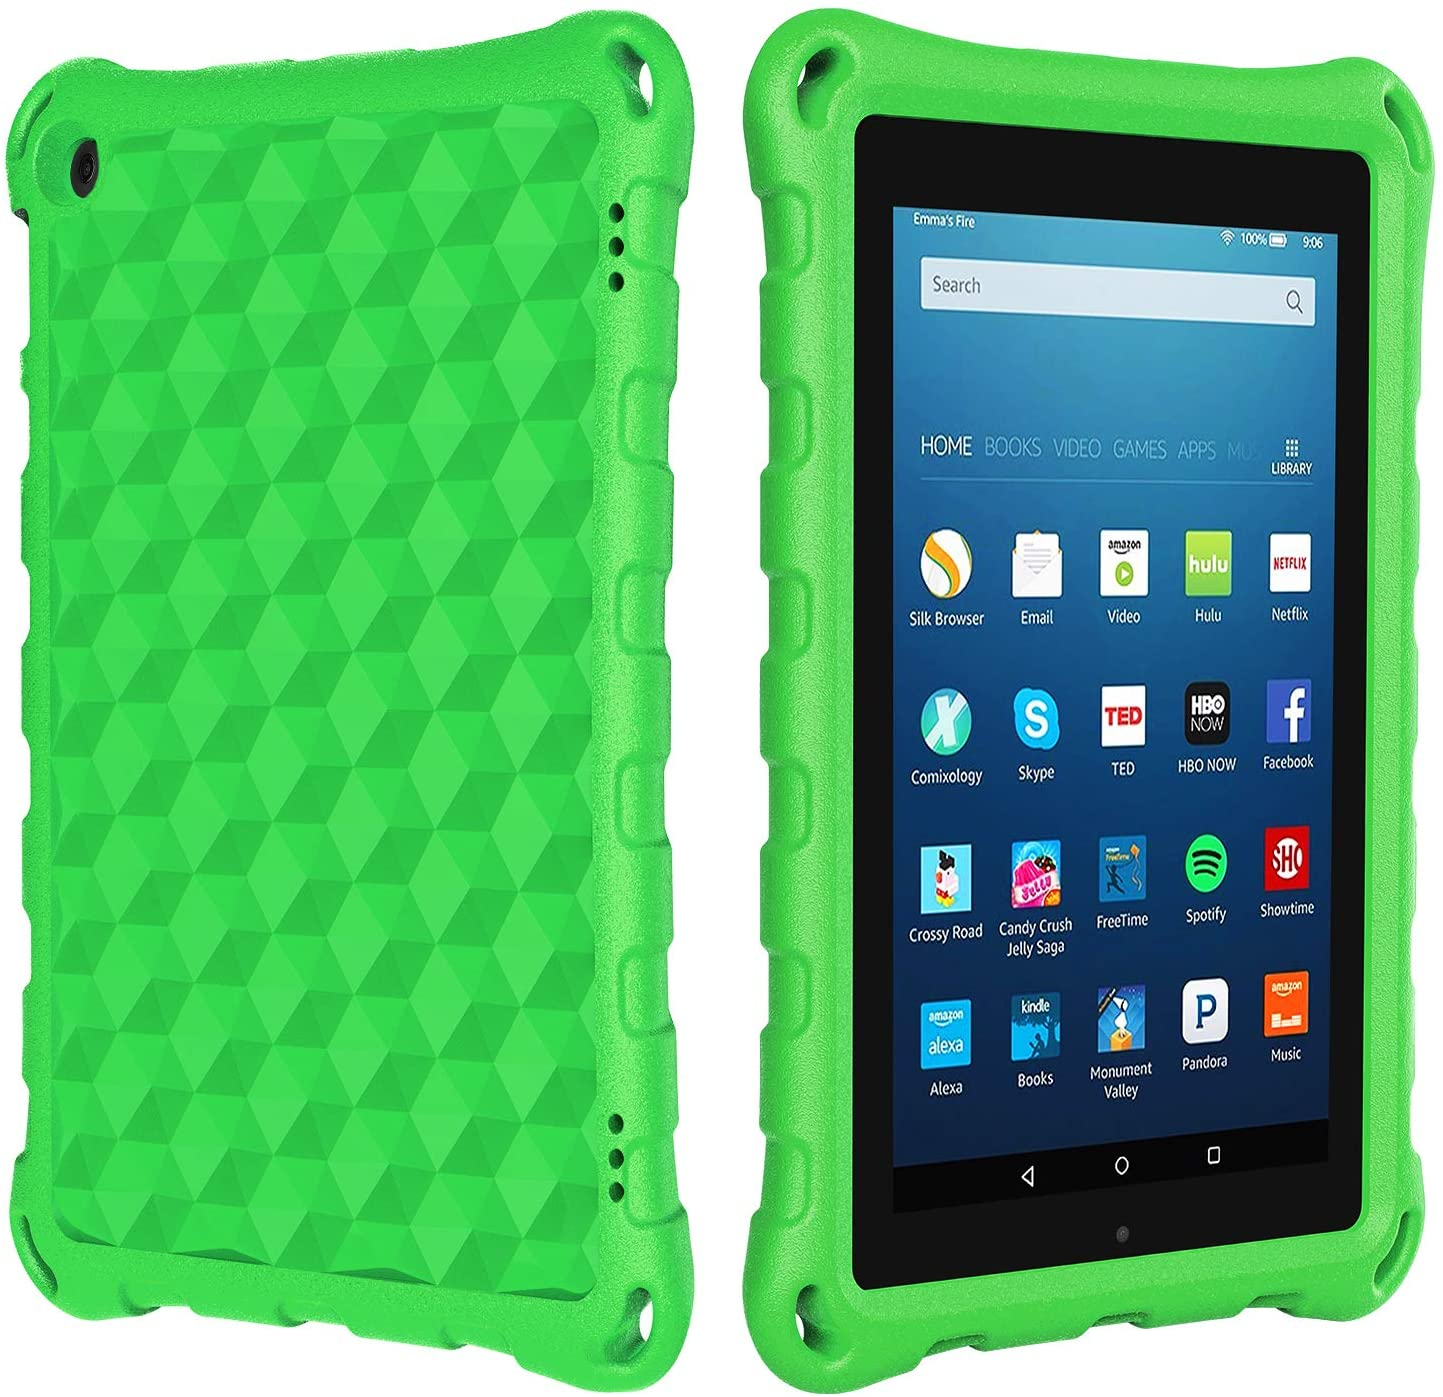 All New 7 inch Tablet Case for Kids, Ubearkk Kid Proof Light Weight Shock Proof Kids Case for 7 inch Tablet (9th/7th/5th Generation, Compatible with 2019&2017/2015 Release), Green